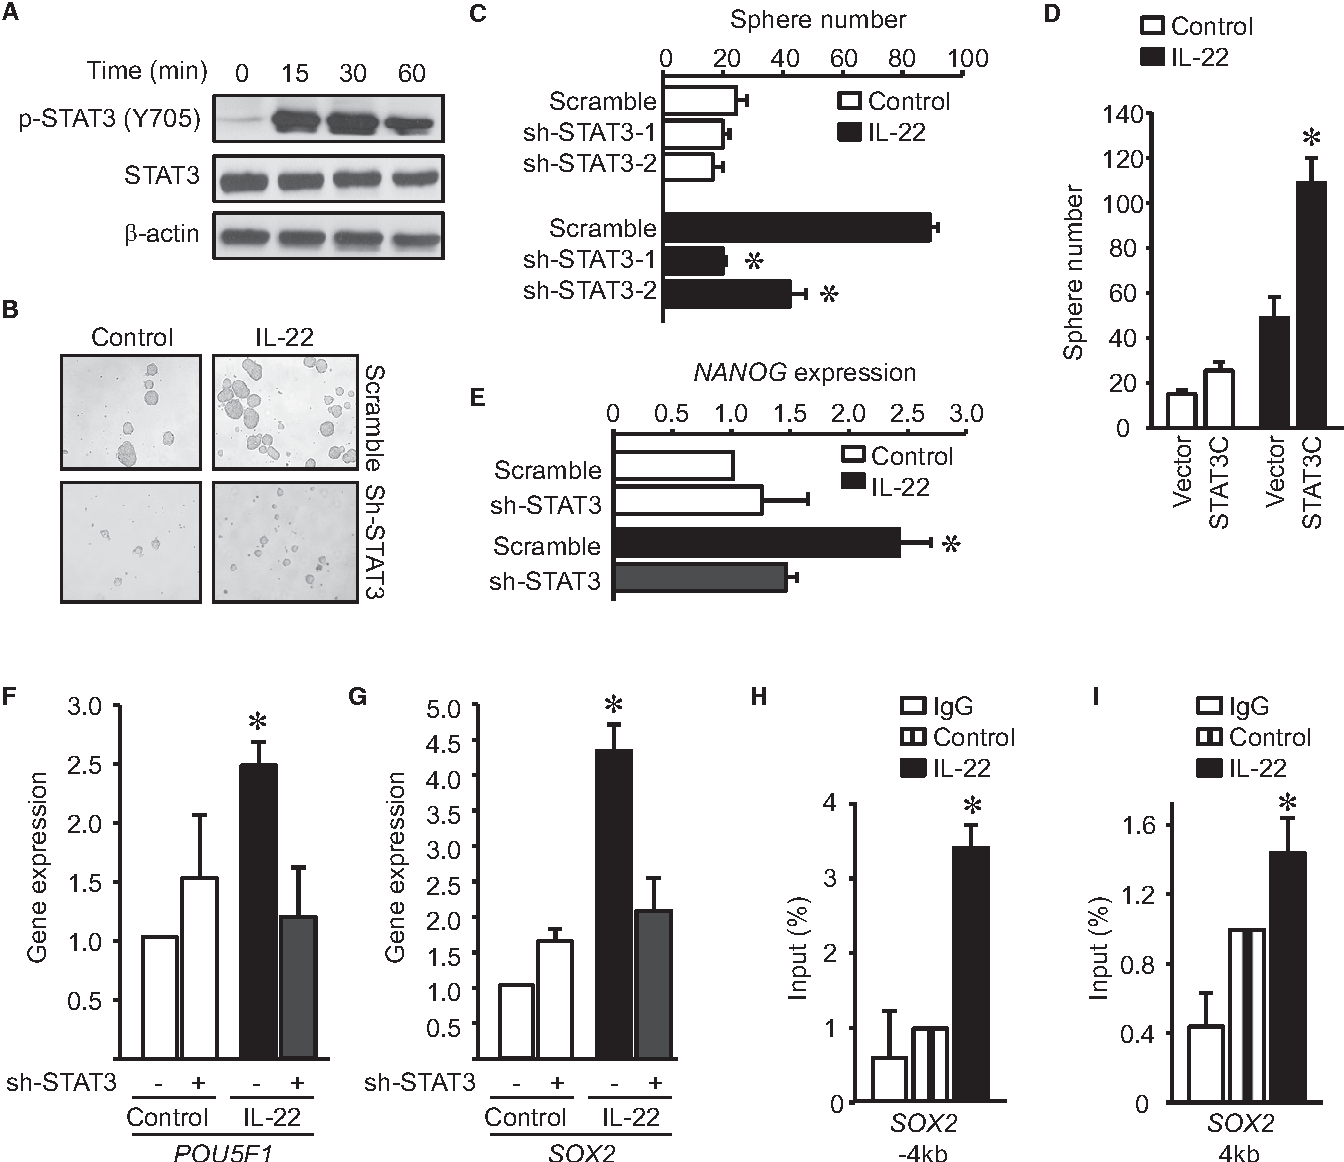 Figure 3 From Il 22 Cd4 T Cells Promote Colorectal Cancer Stemness Via Stat3 Transcription Factor Activation And Induction Of The Methyltransferase Dot1l Semantic Scholar